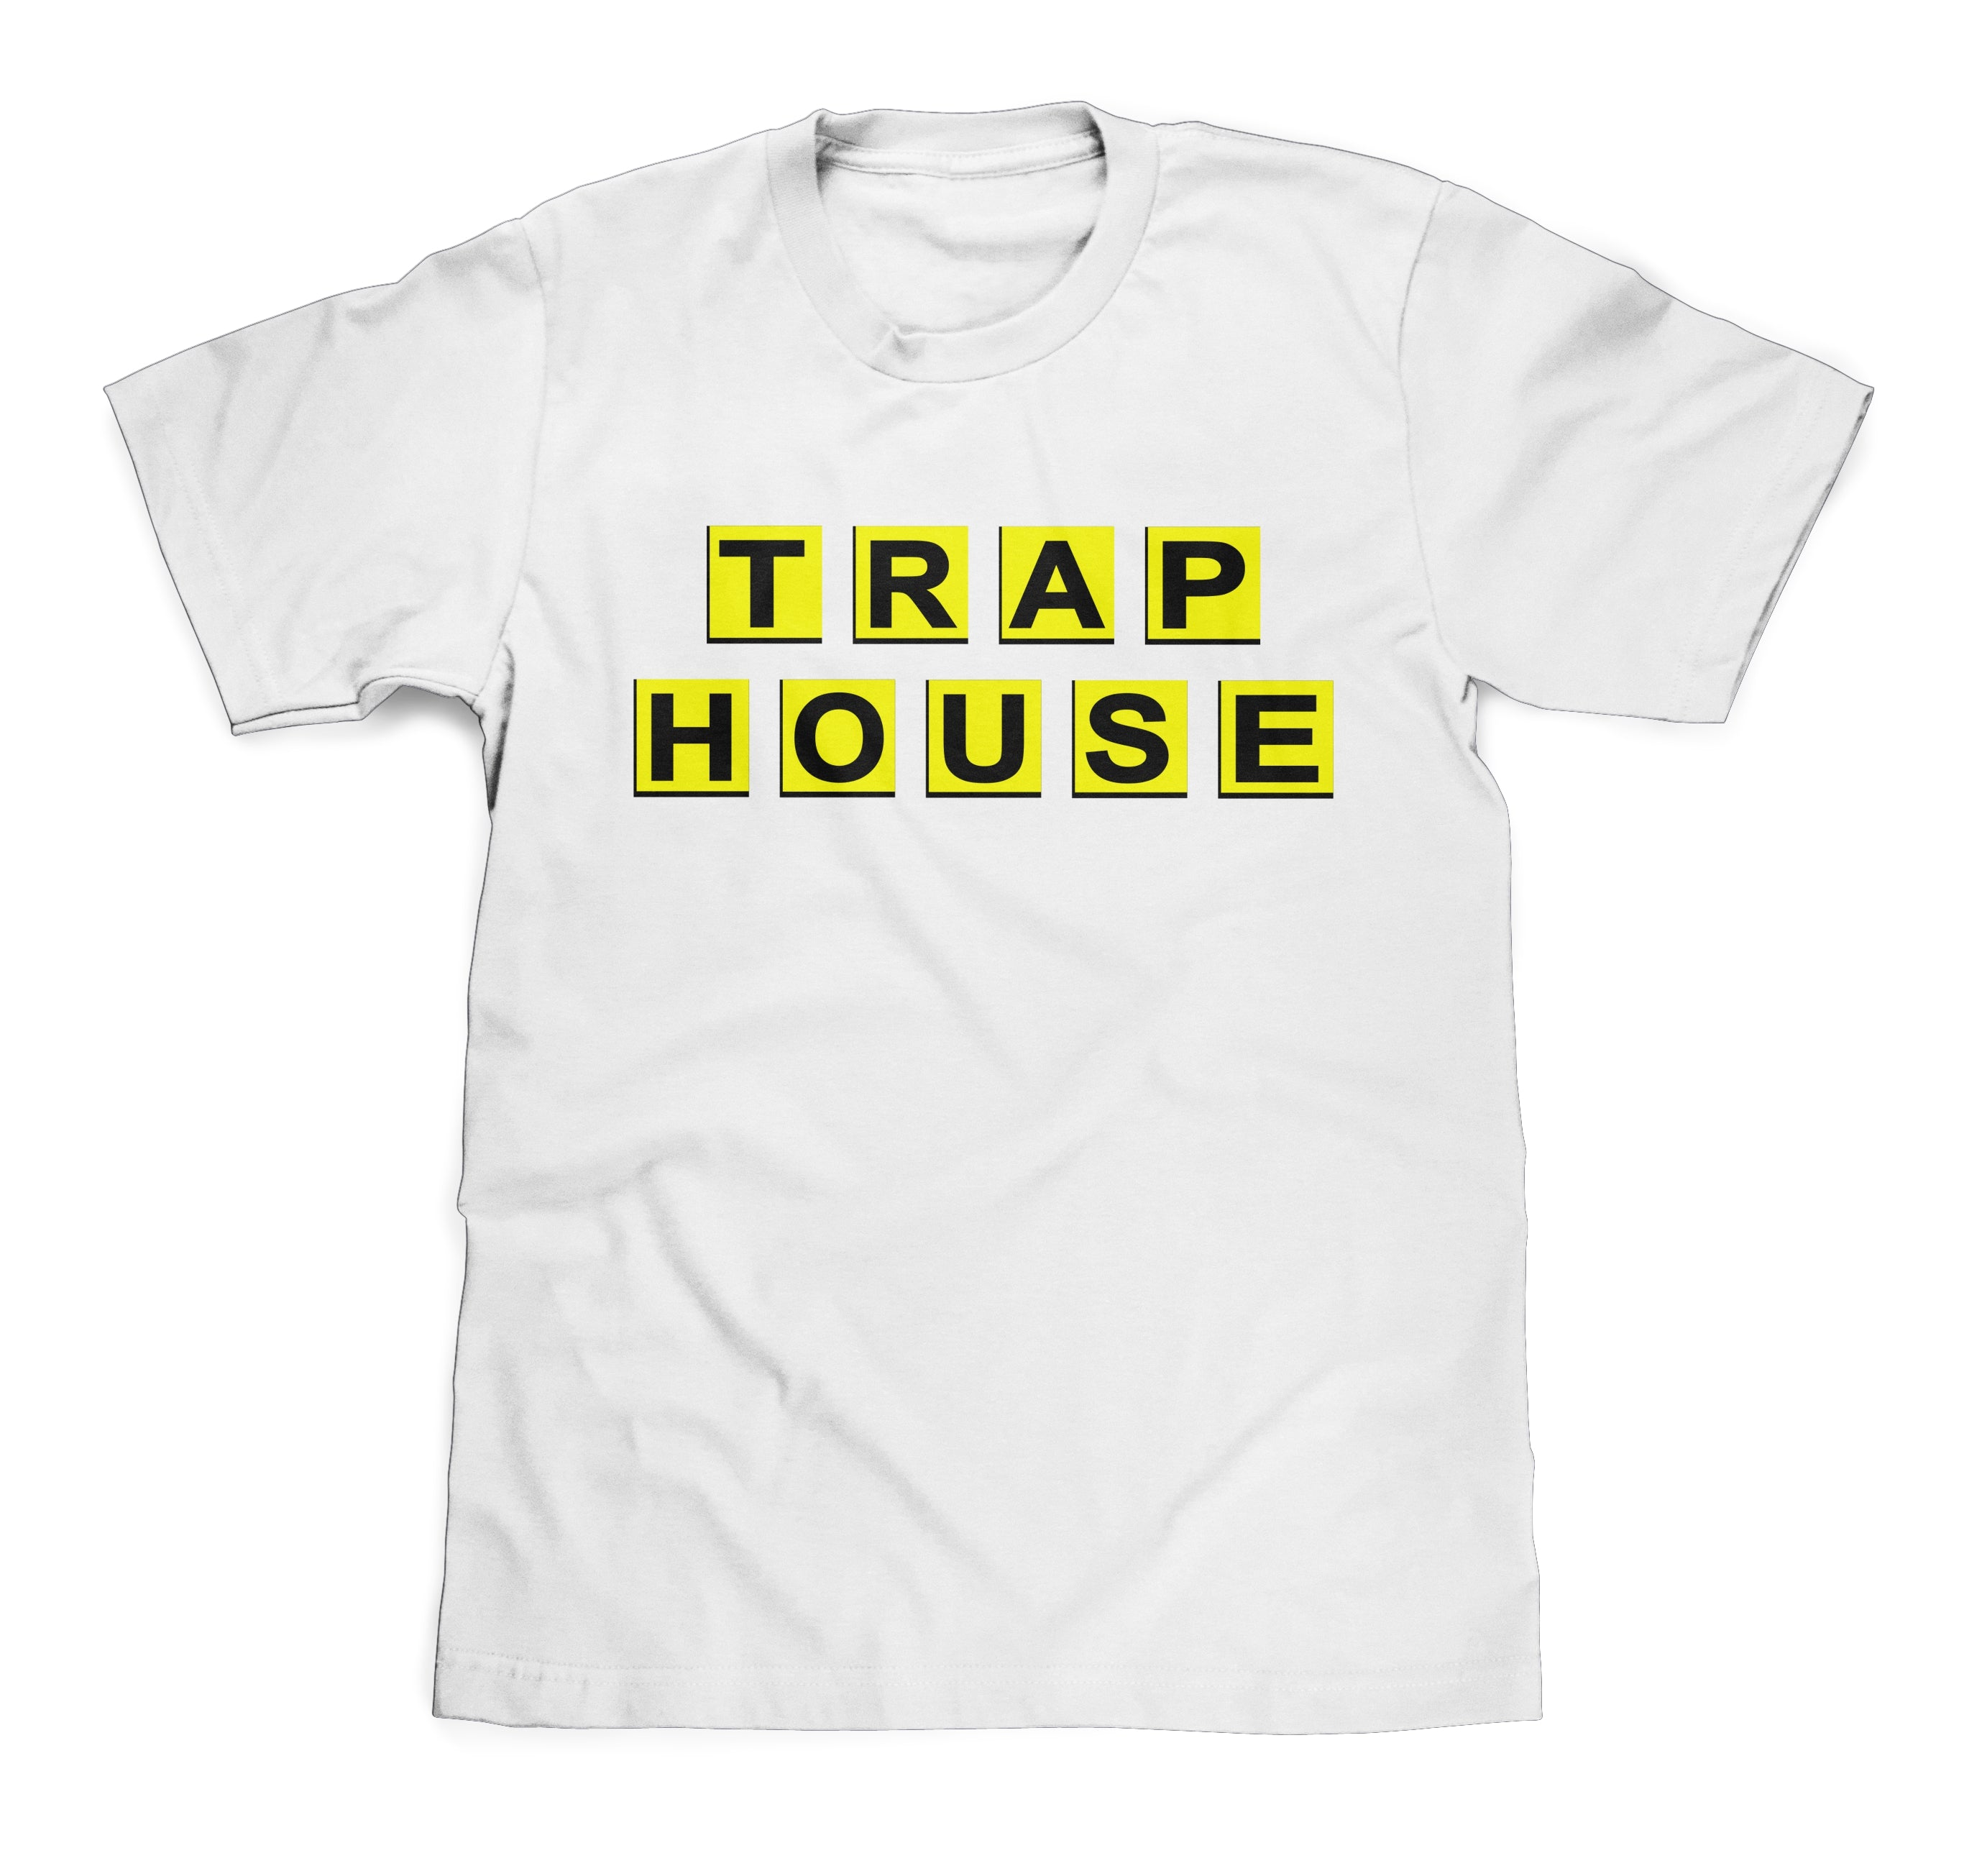 Trap House Tee